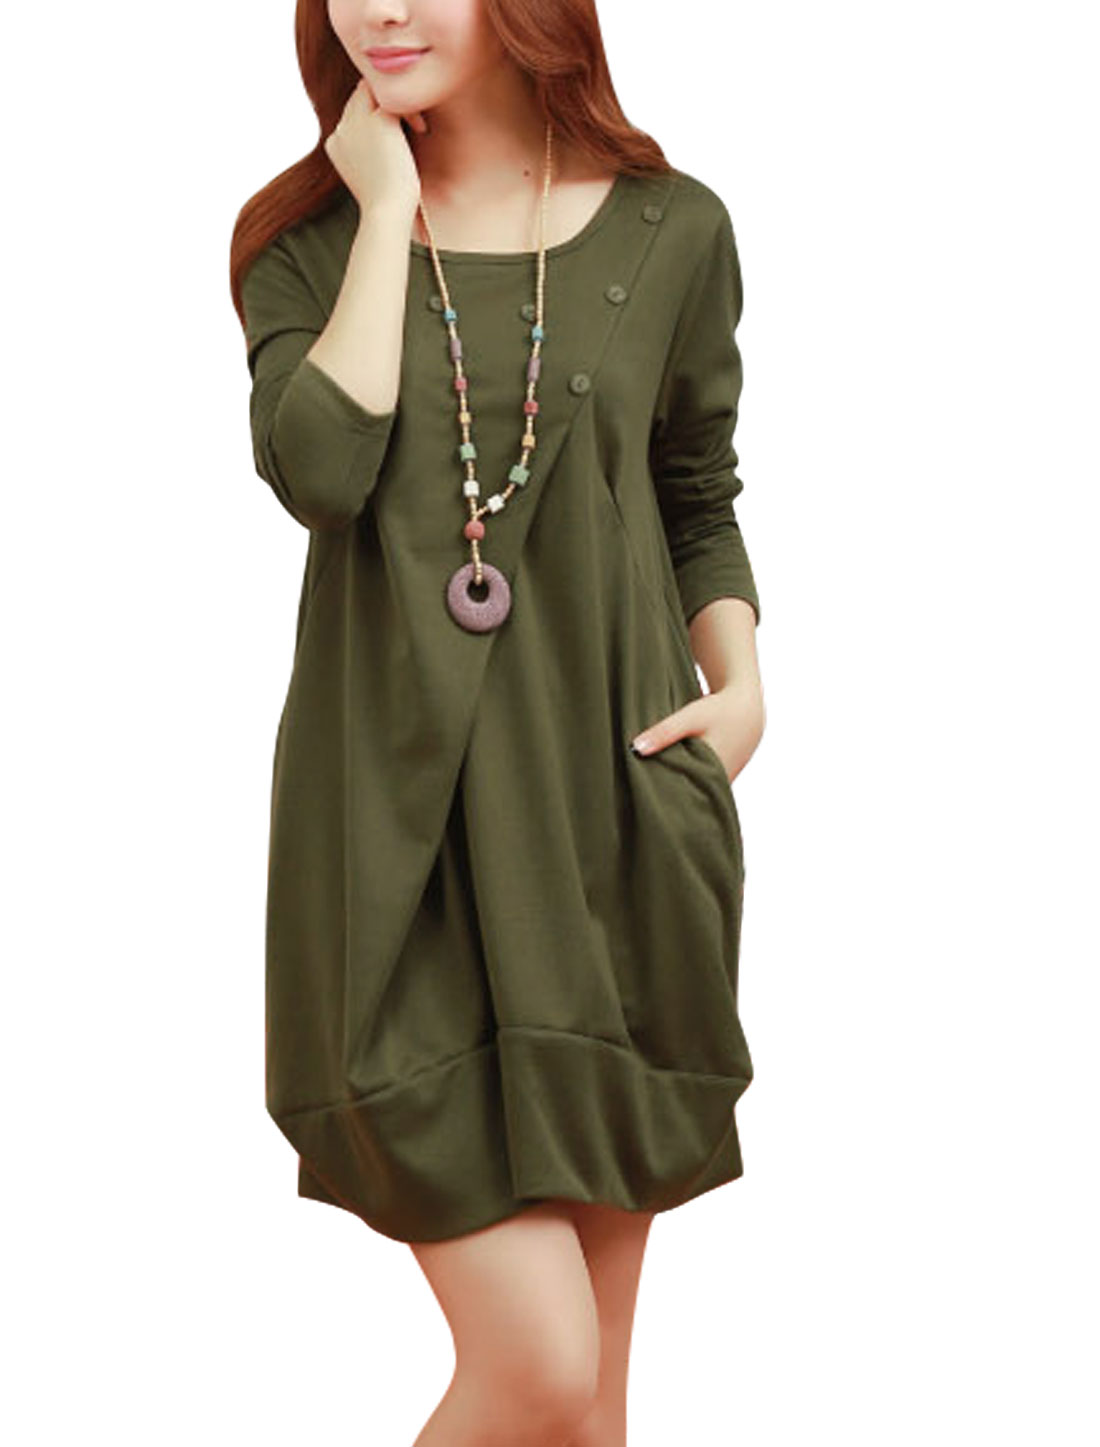 Women Ruched Detail Long Sleeves Slipover Short Dress Army Green M